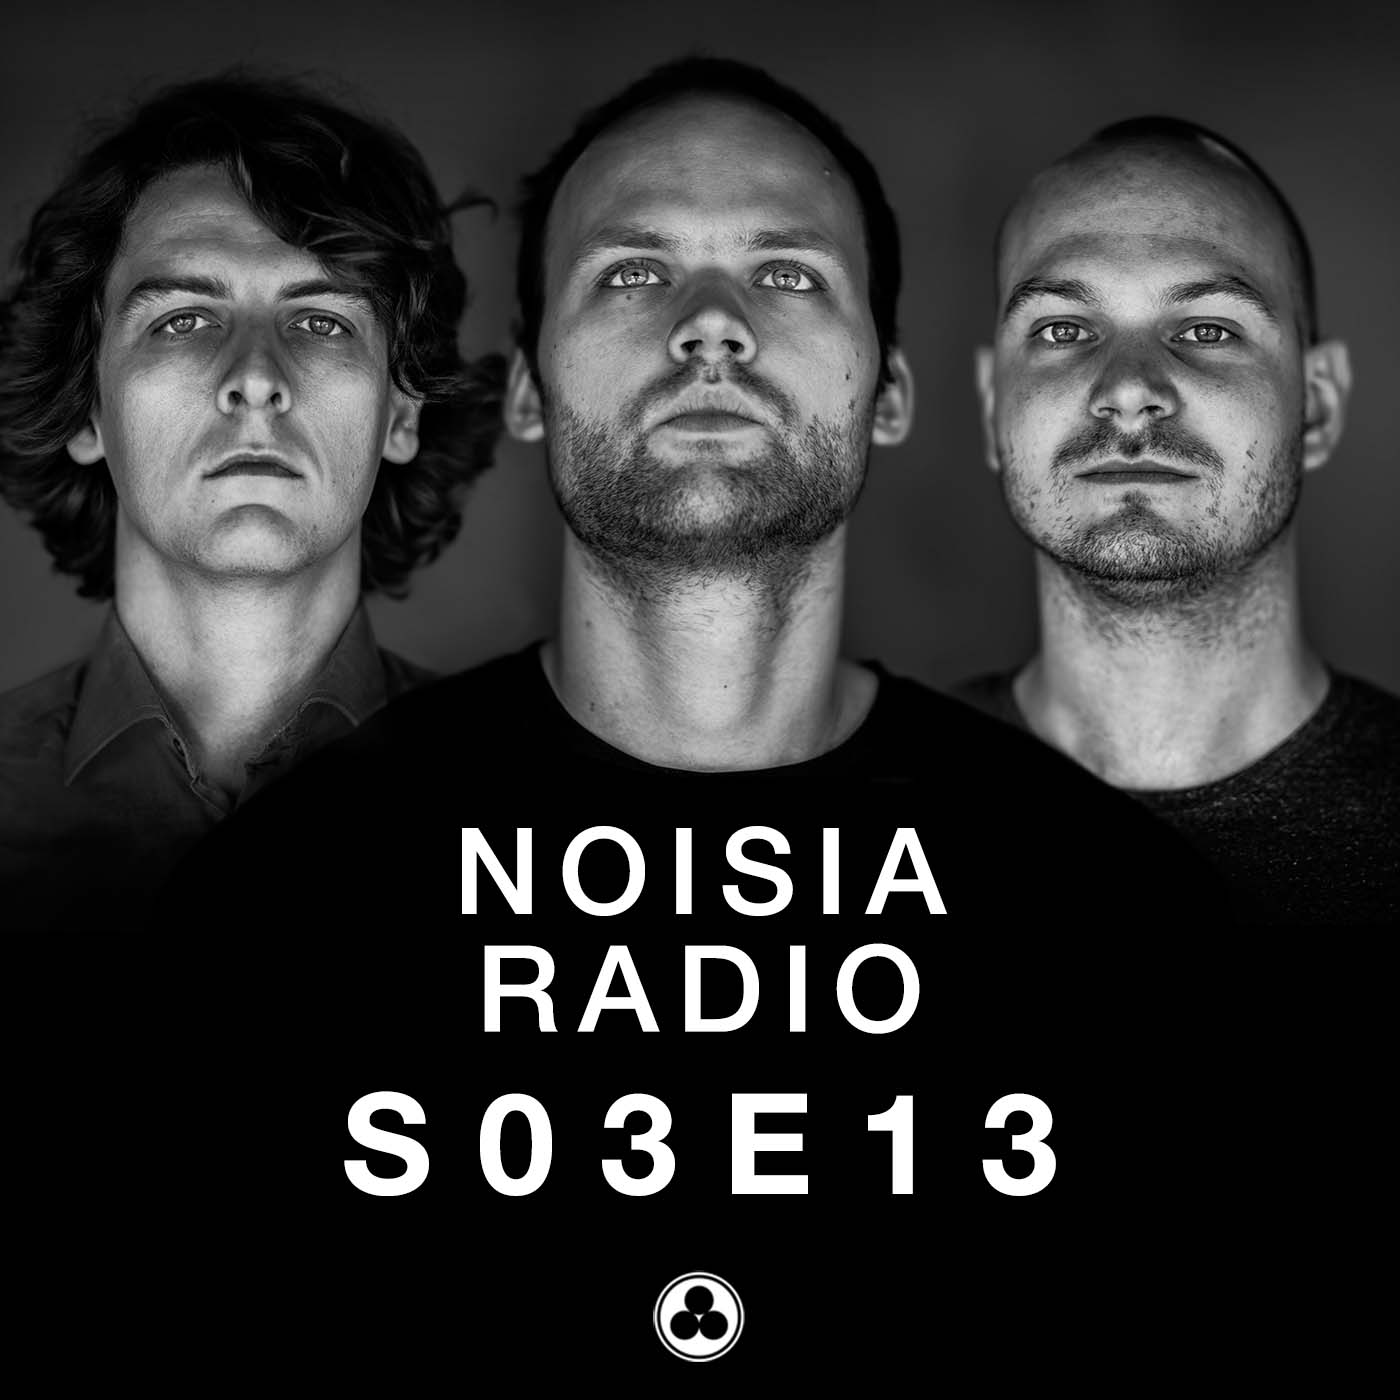 Noisia Radio S03E13